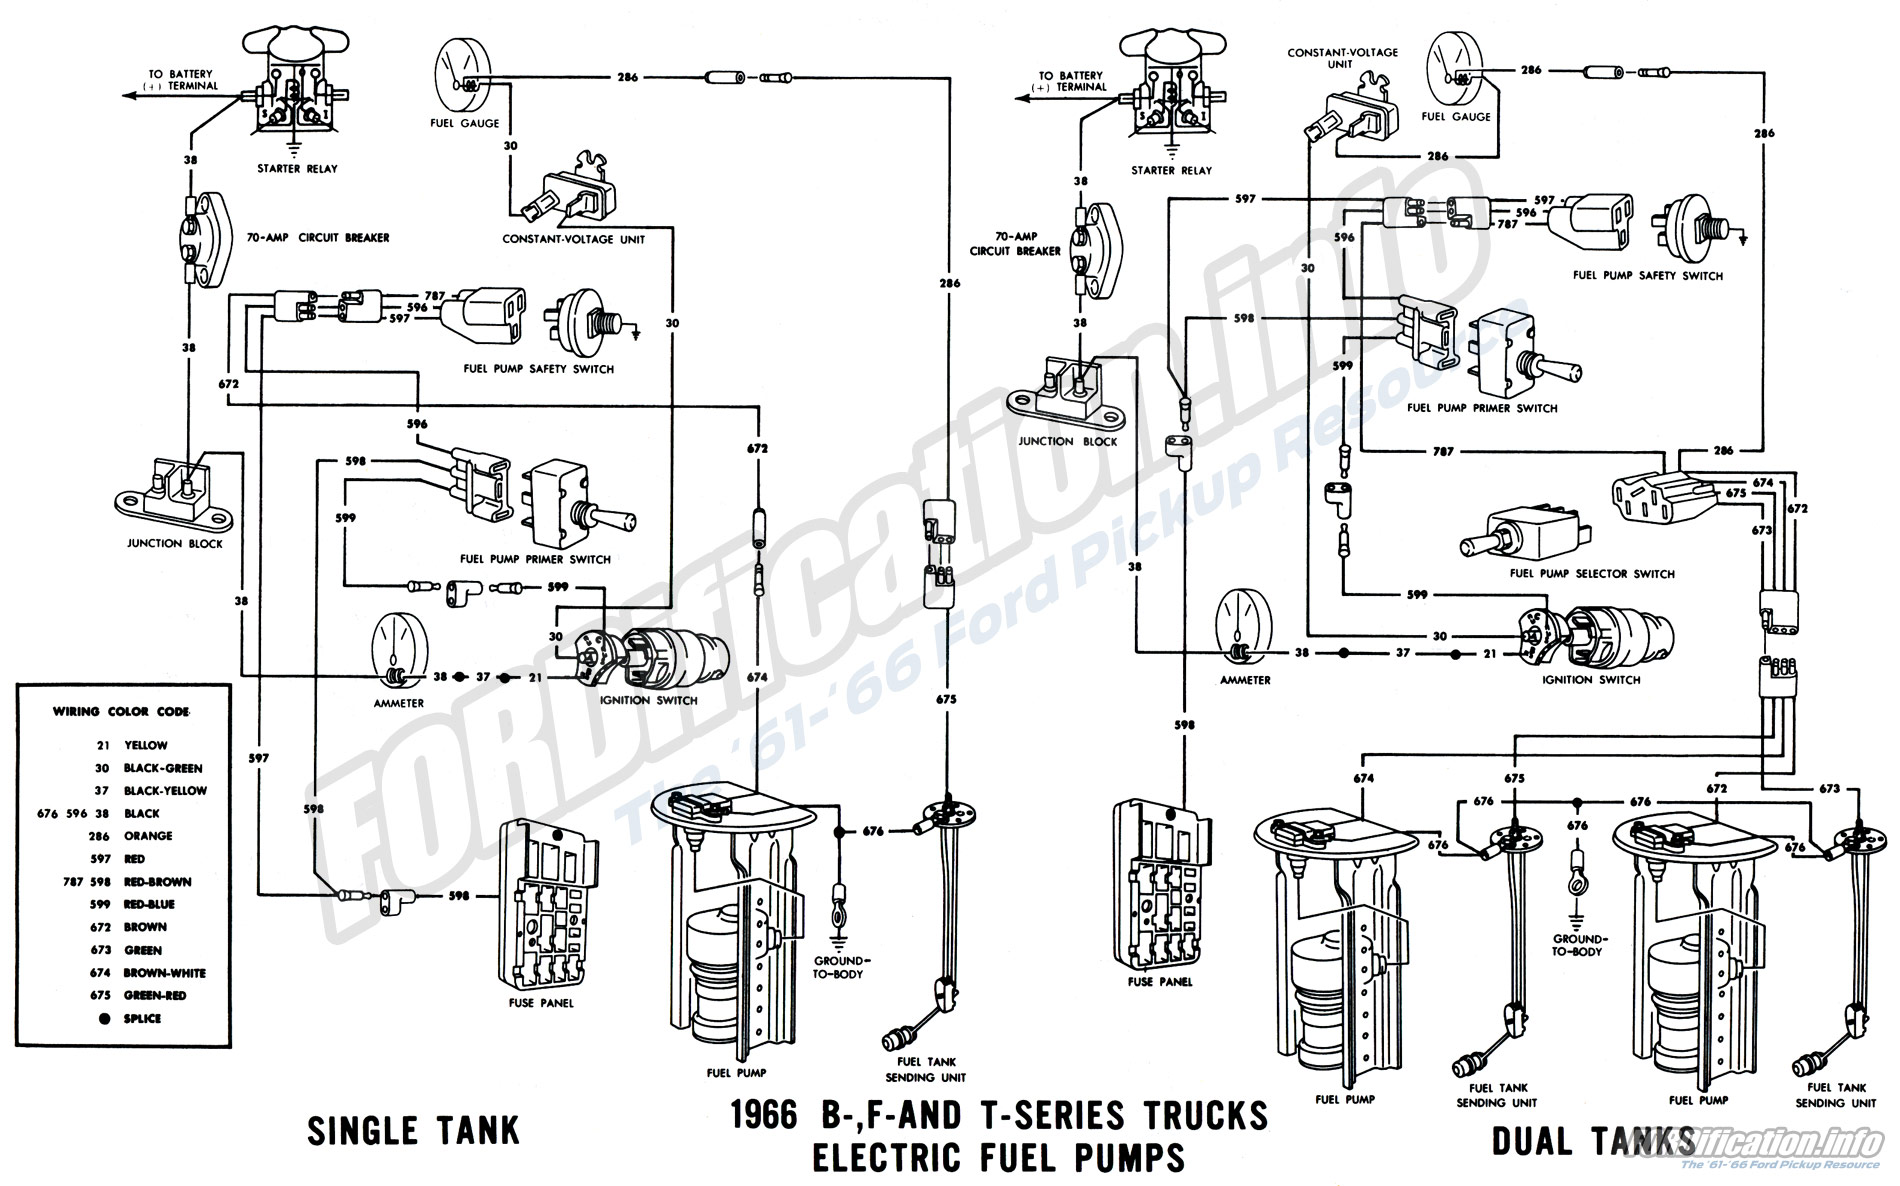 1966 ford truck wiring diagrams - fordification.info - the ... 66 c10 wiring diagram